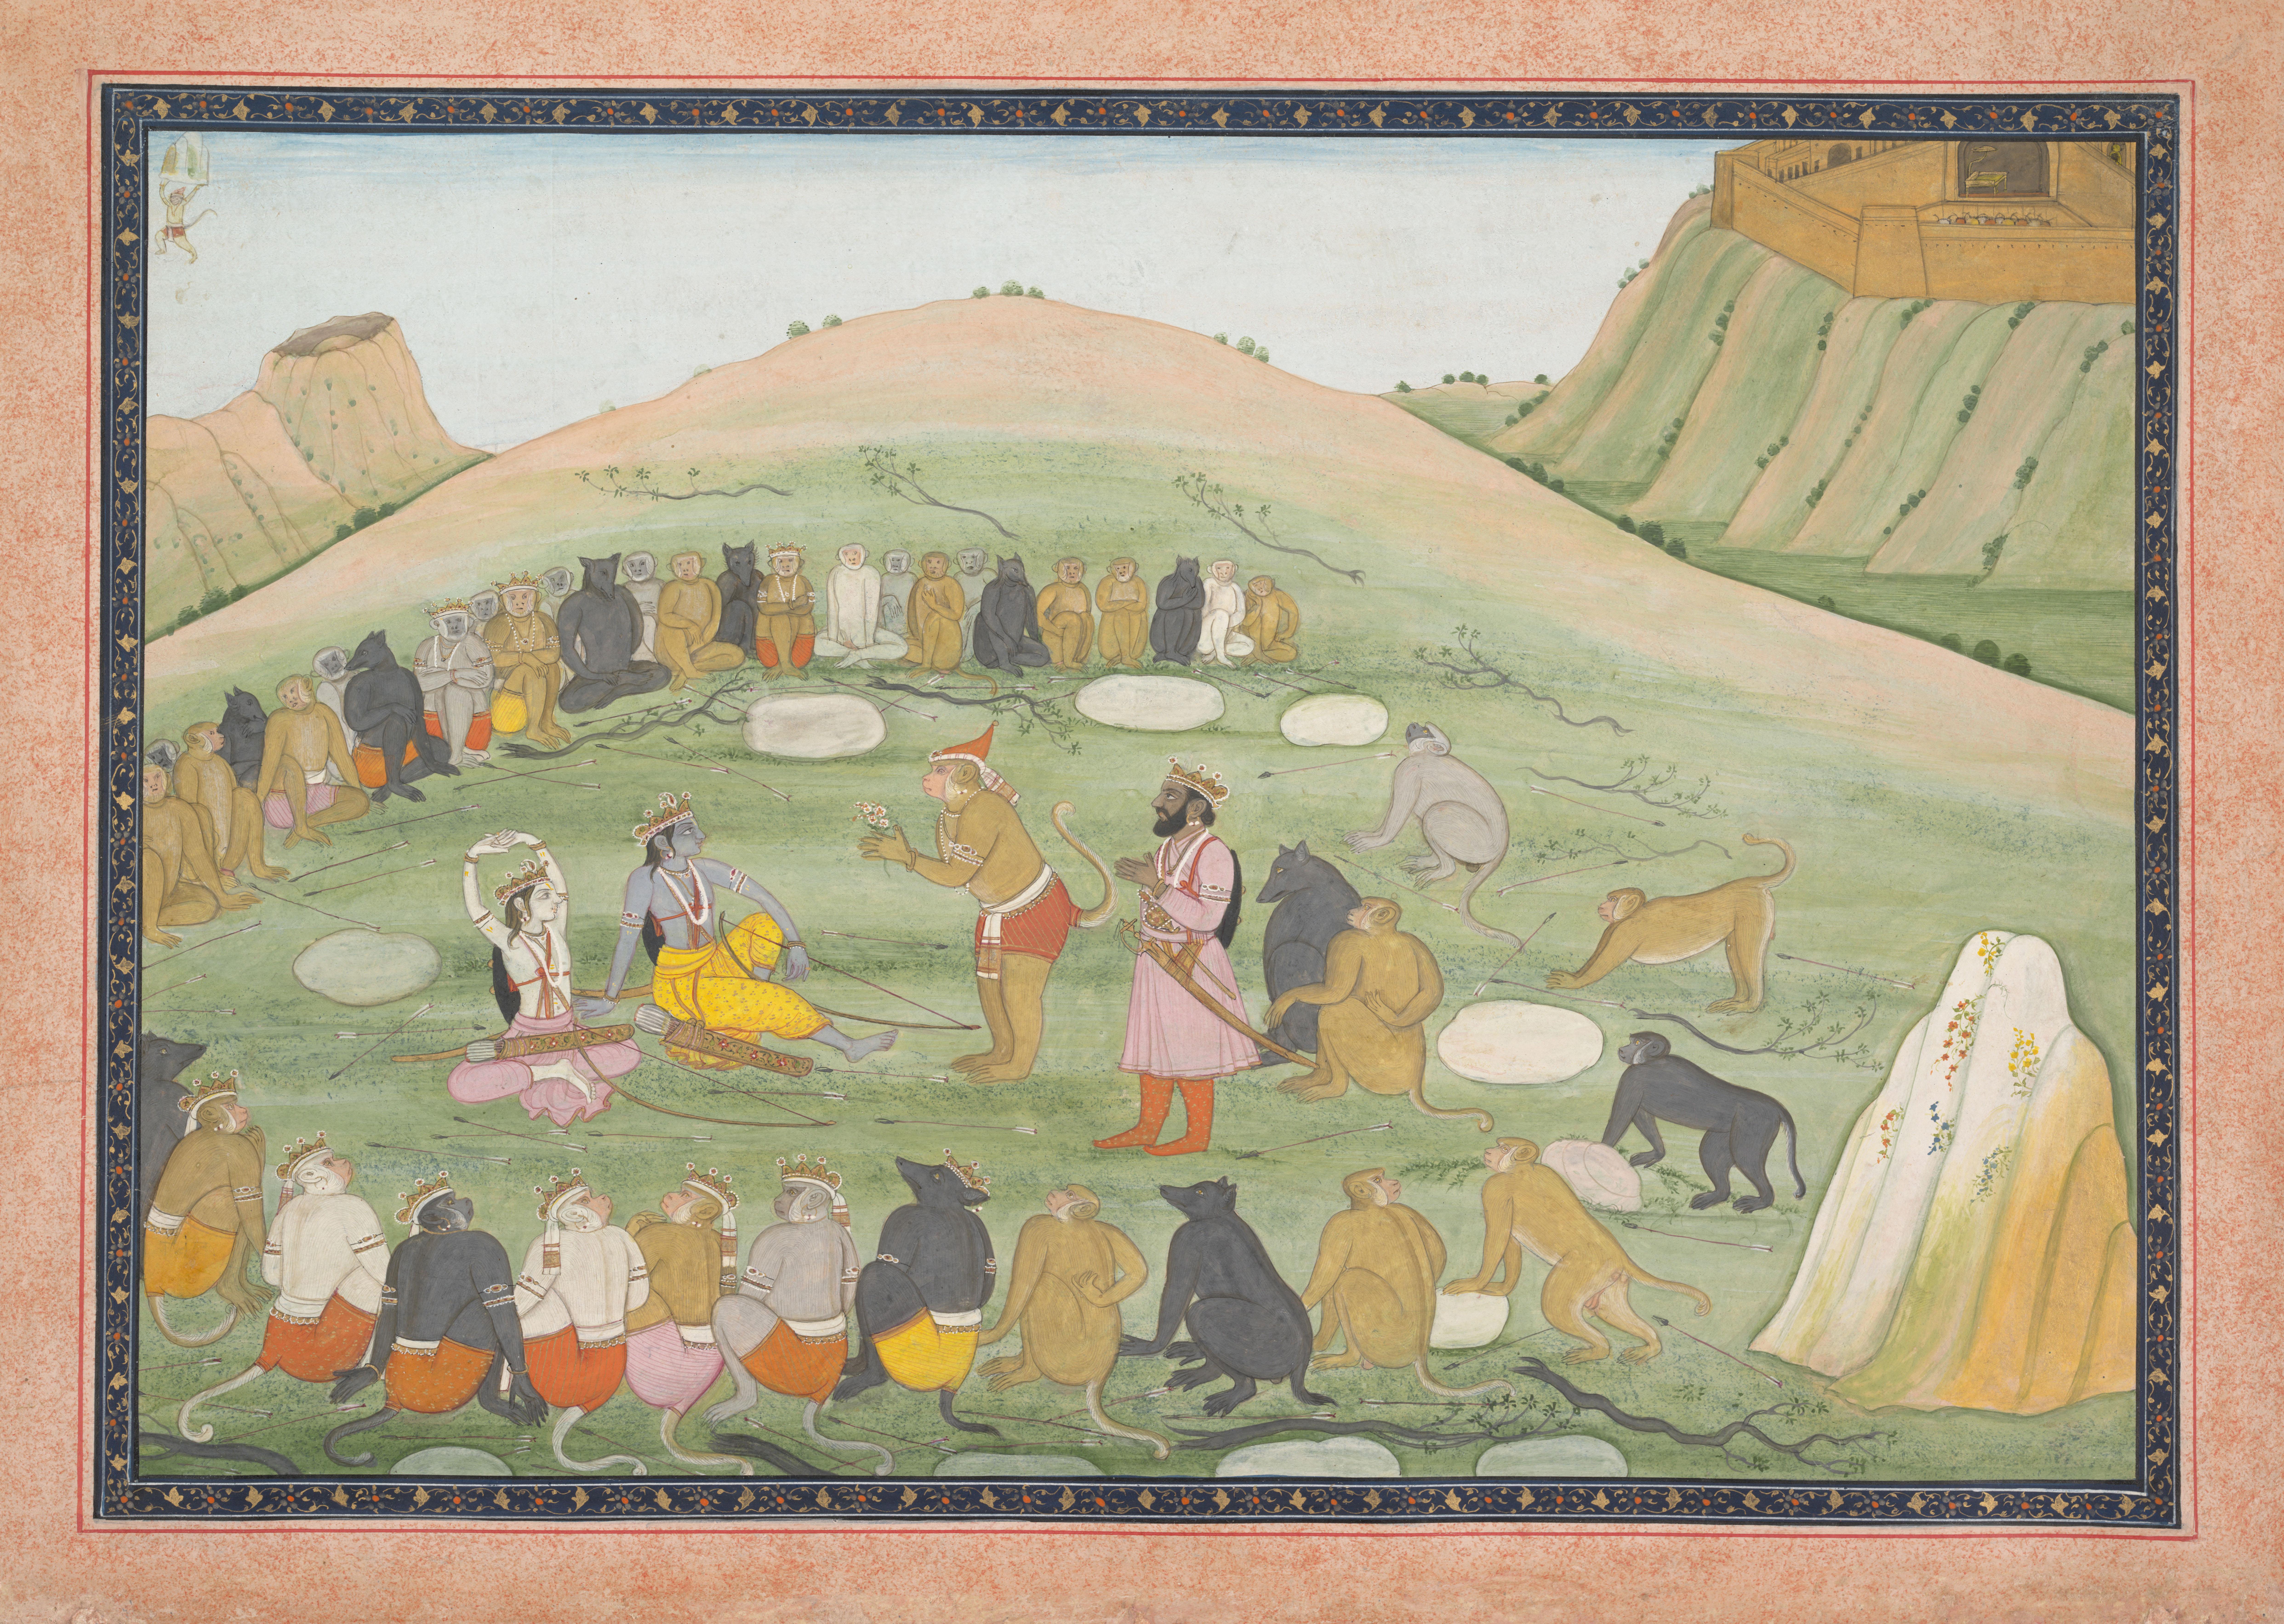 An ink and opaque watercolour on paper from the kingdom of Guler, Punjab, ca. 1790. The painting depicts Hanuman reviving Rama and Lakshmana with medicinal herbs